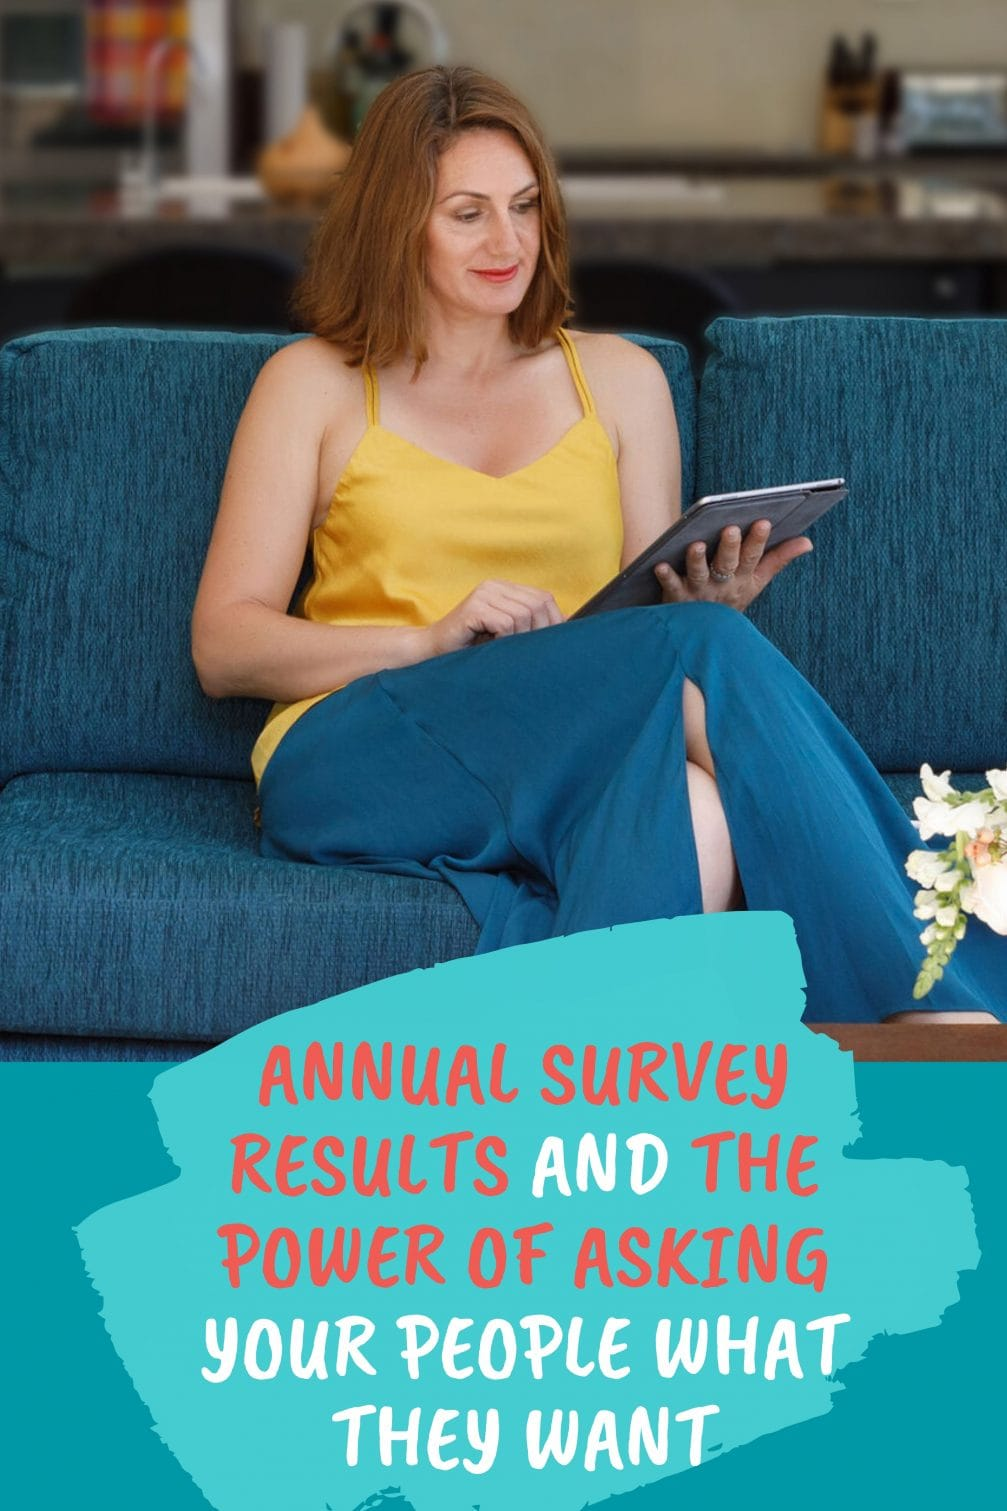 Annual Survey Results and the Power of Asking Your People What They Want